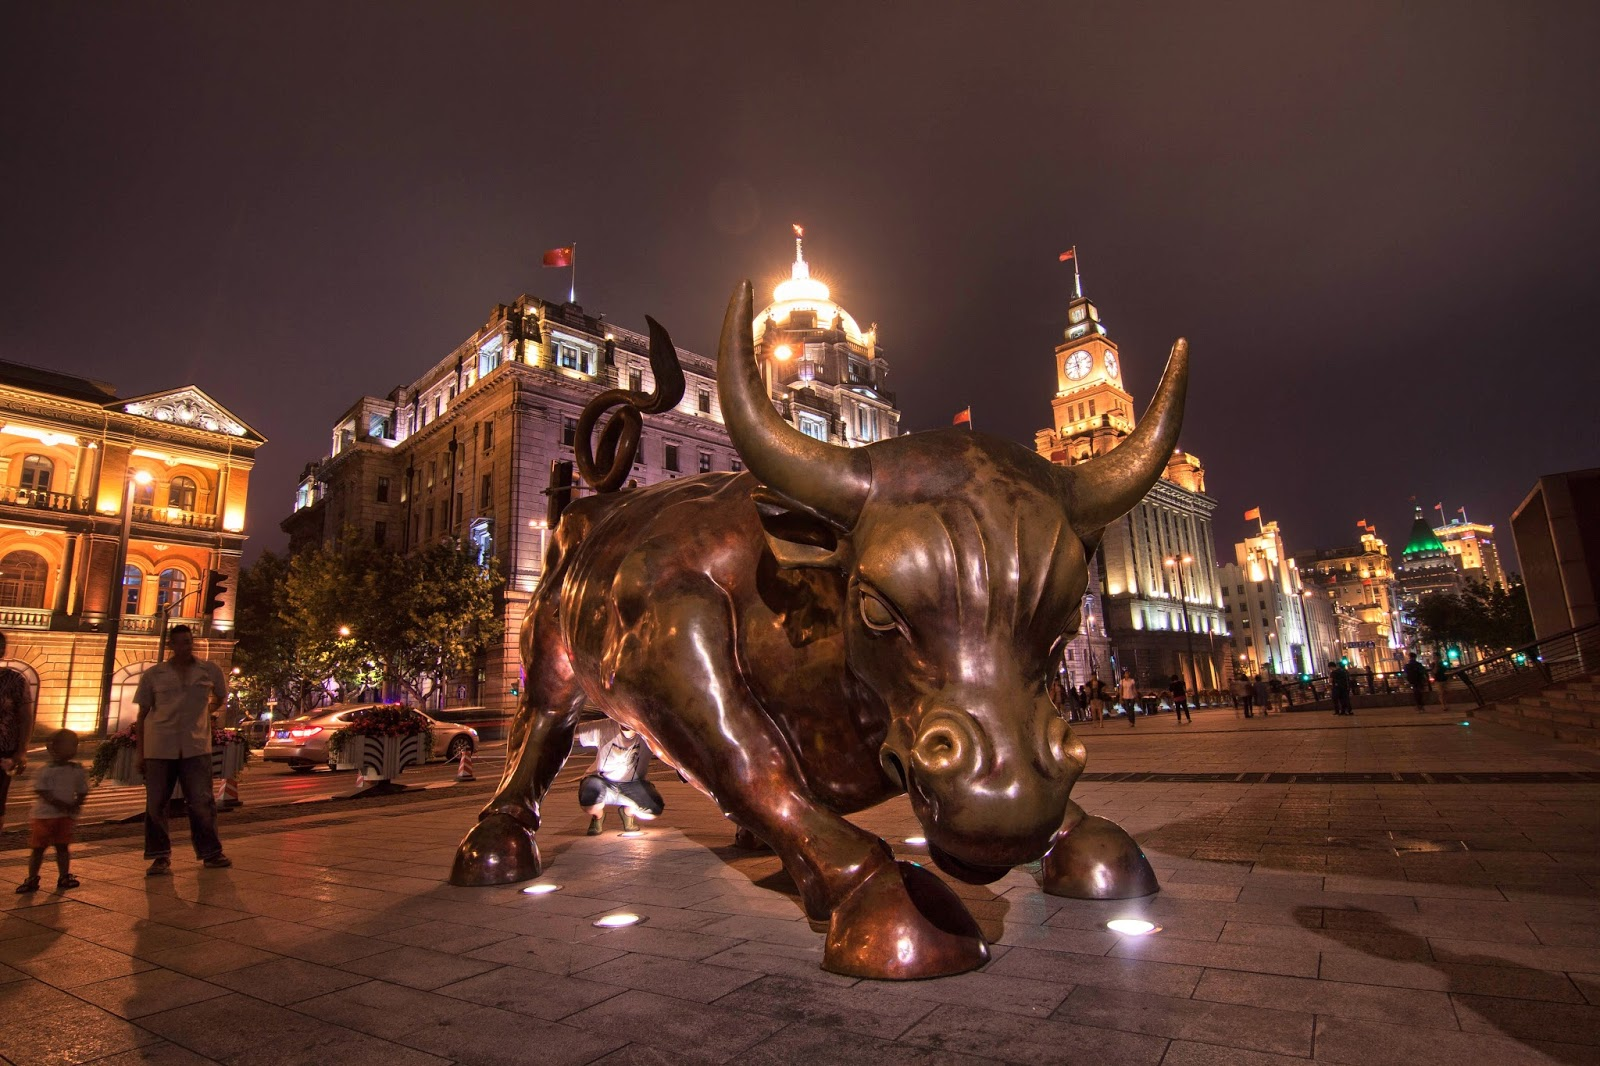 The Bund Financial Bull